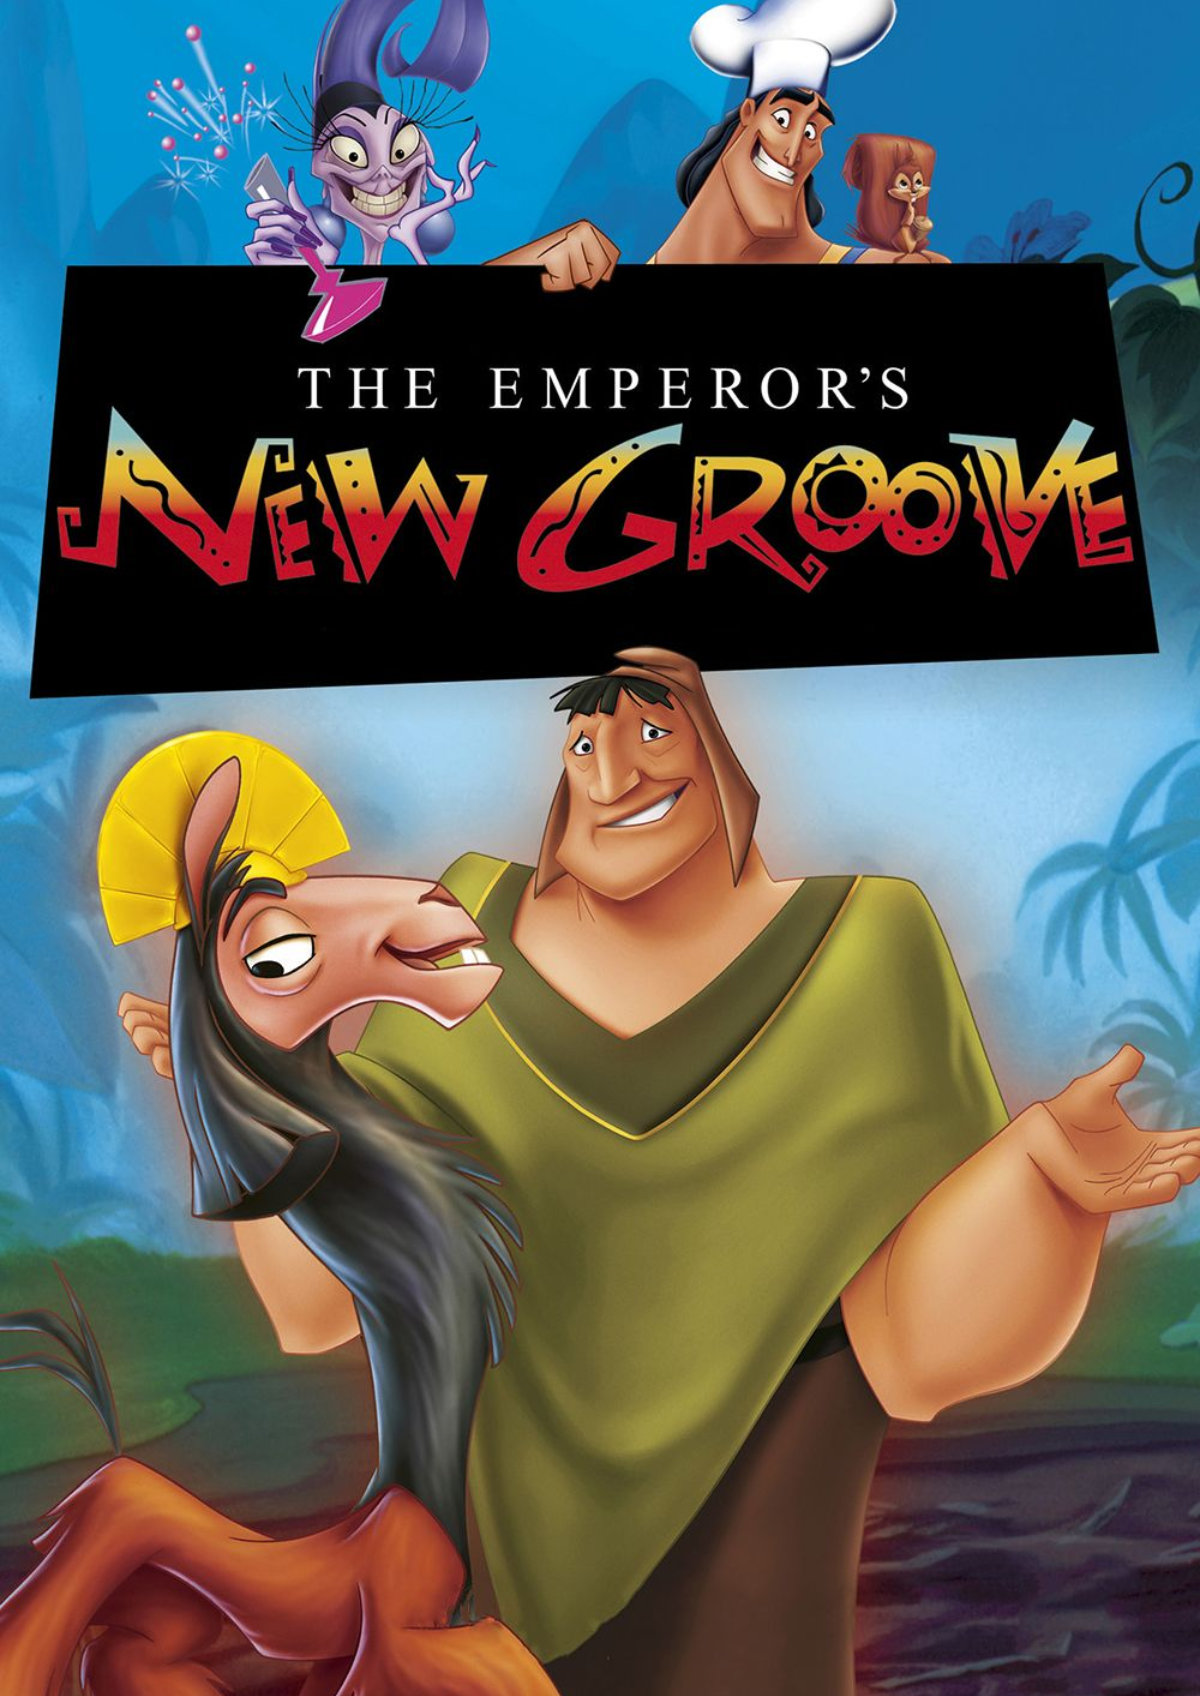 'The Emperor's New Groove' movie poster